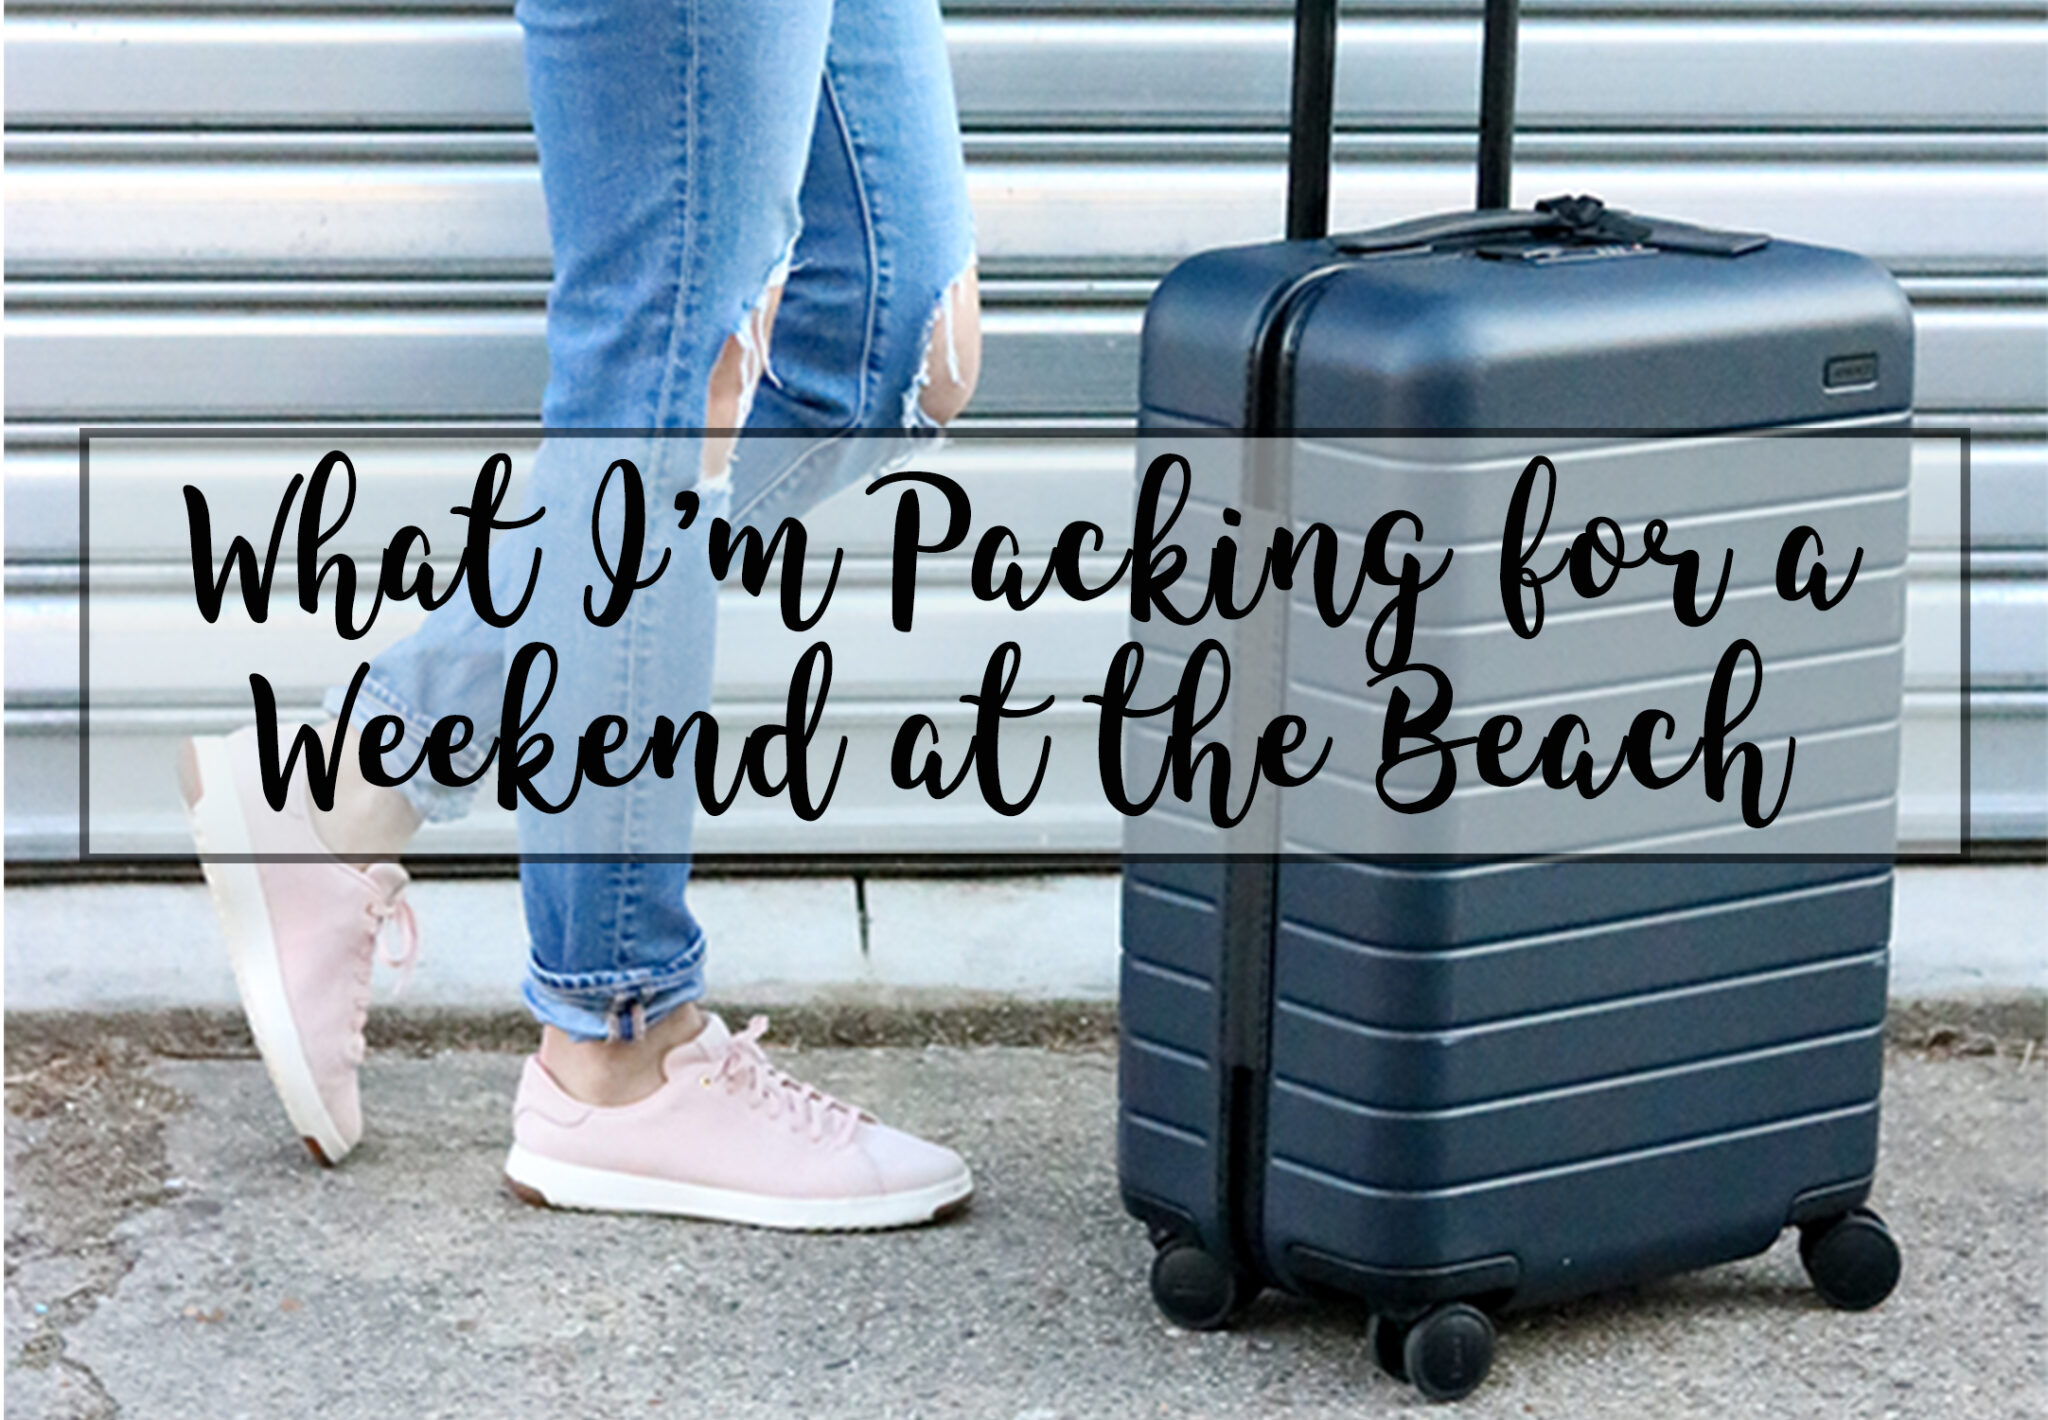 Packing for a Weekend at the Beach - Cobalt Chronicles - @cobaltchronicle